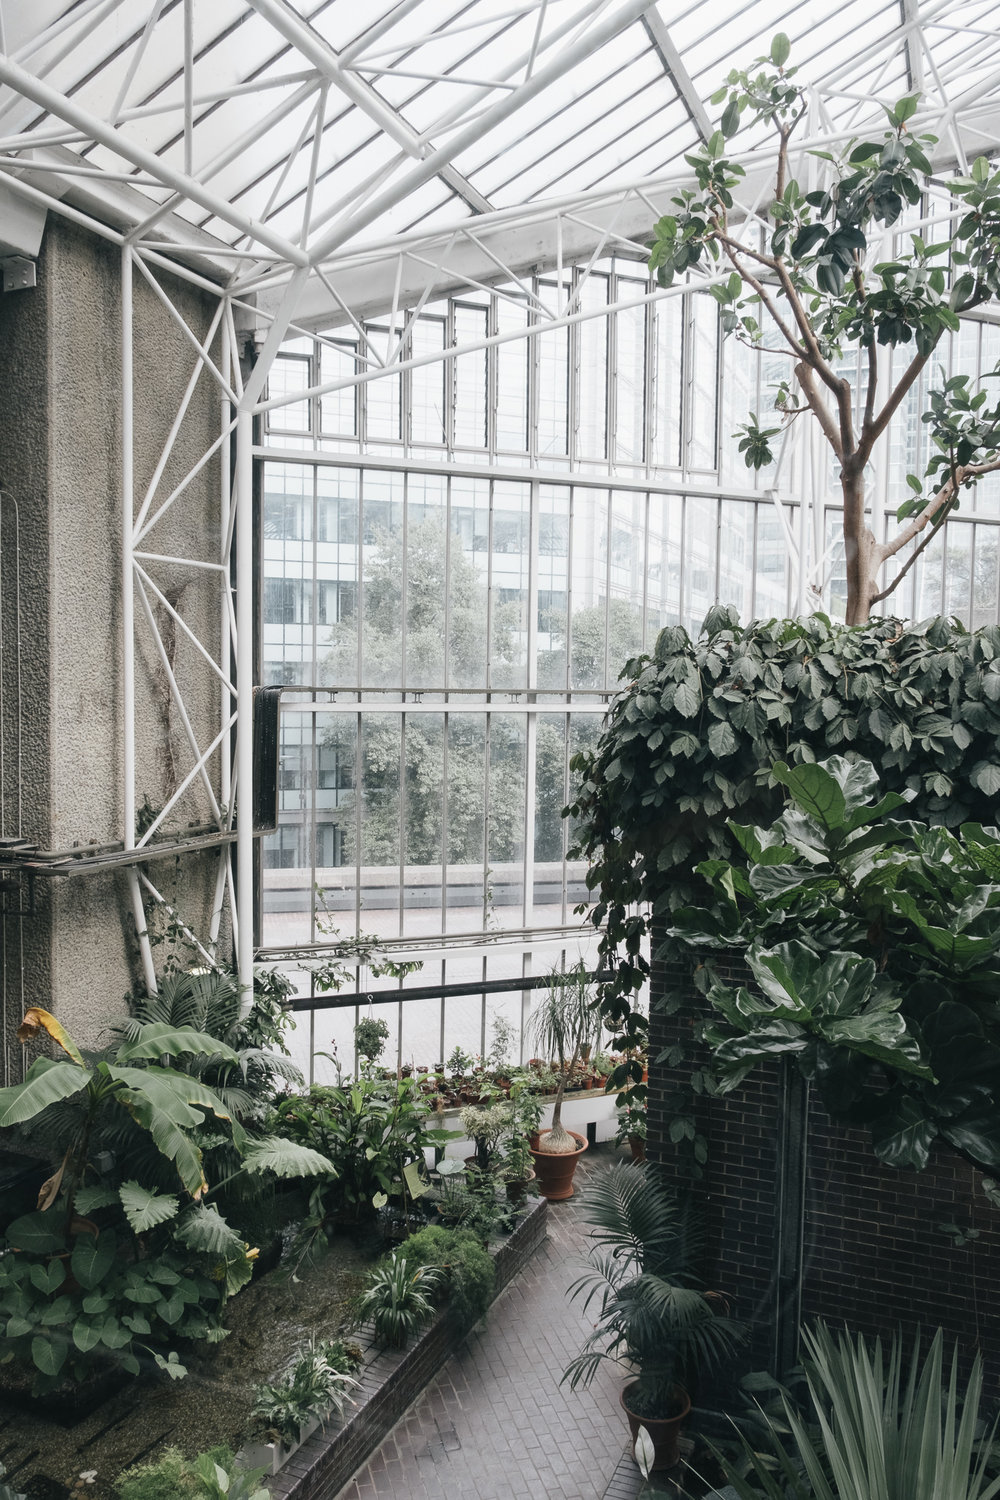 Barbican Conservatory is free to visit